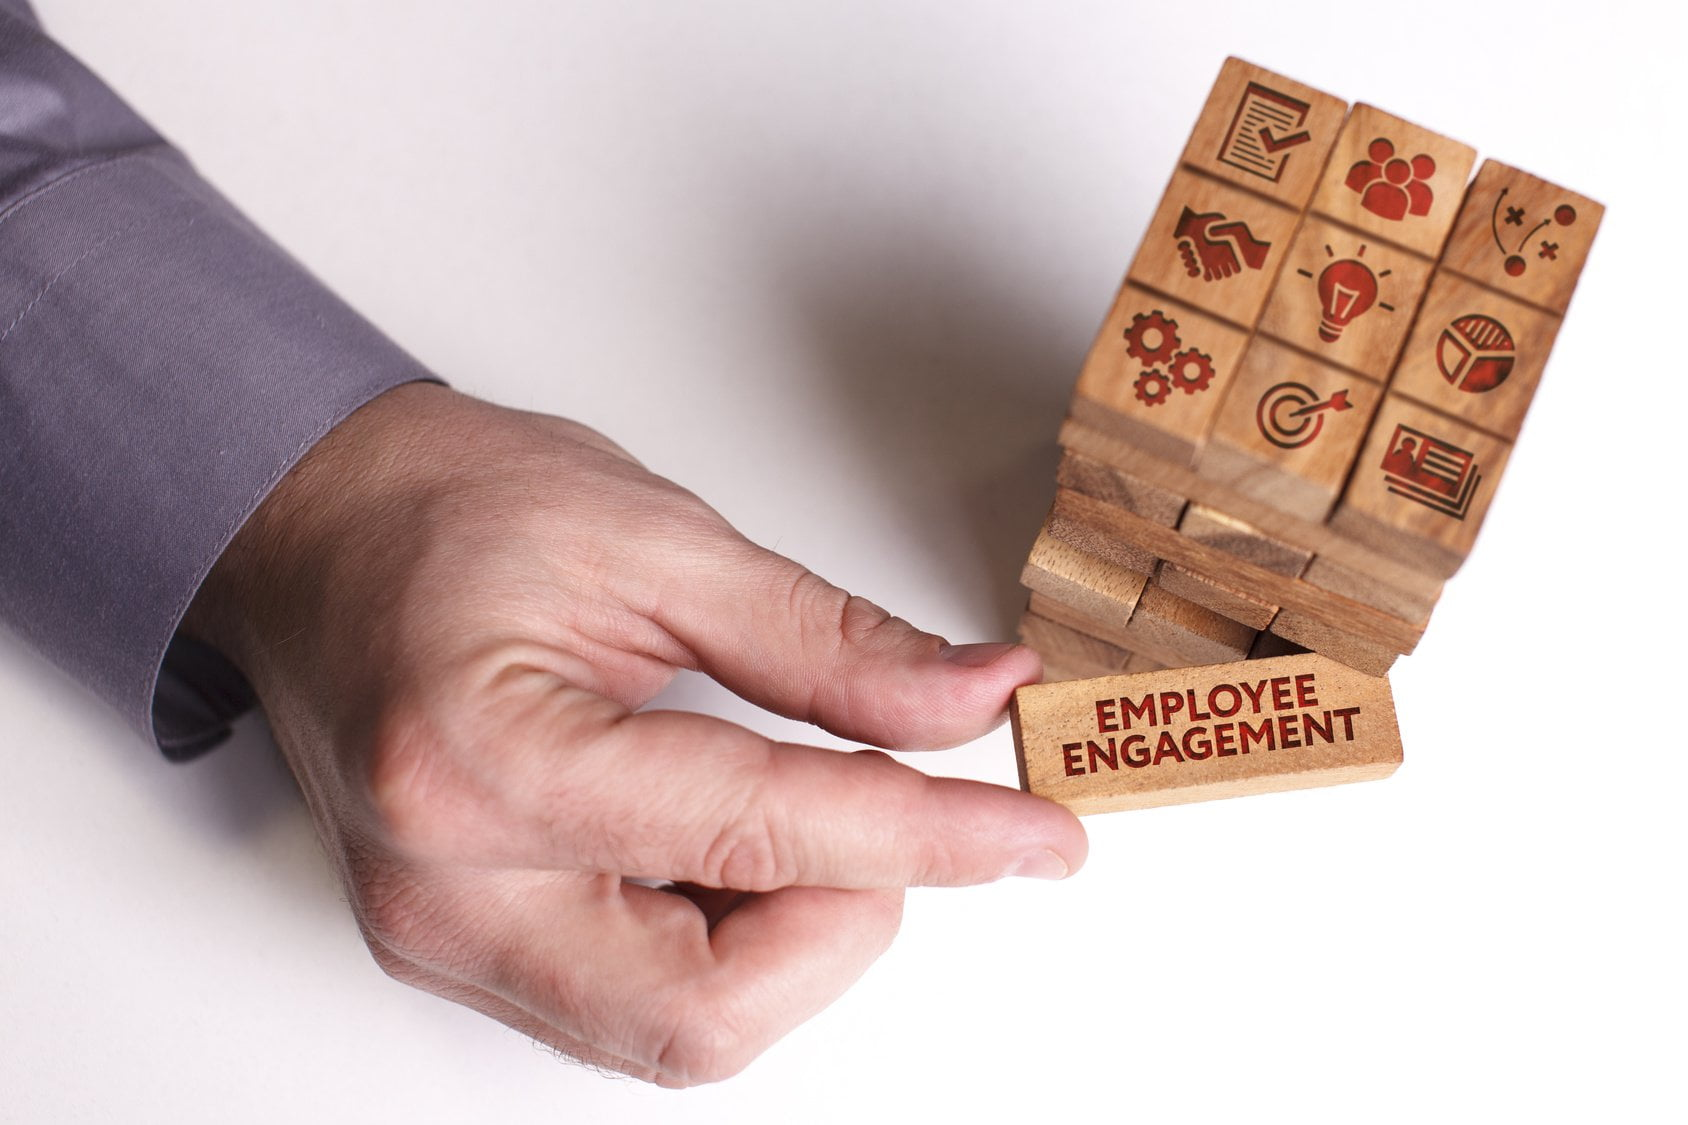 Employee Engagement Secrets: Real Business Owners Share How They Get the Most Out of Their Staff